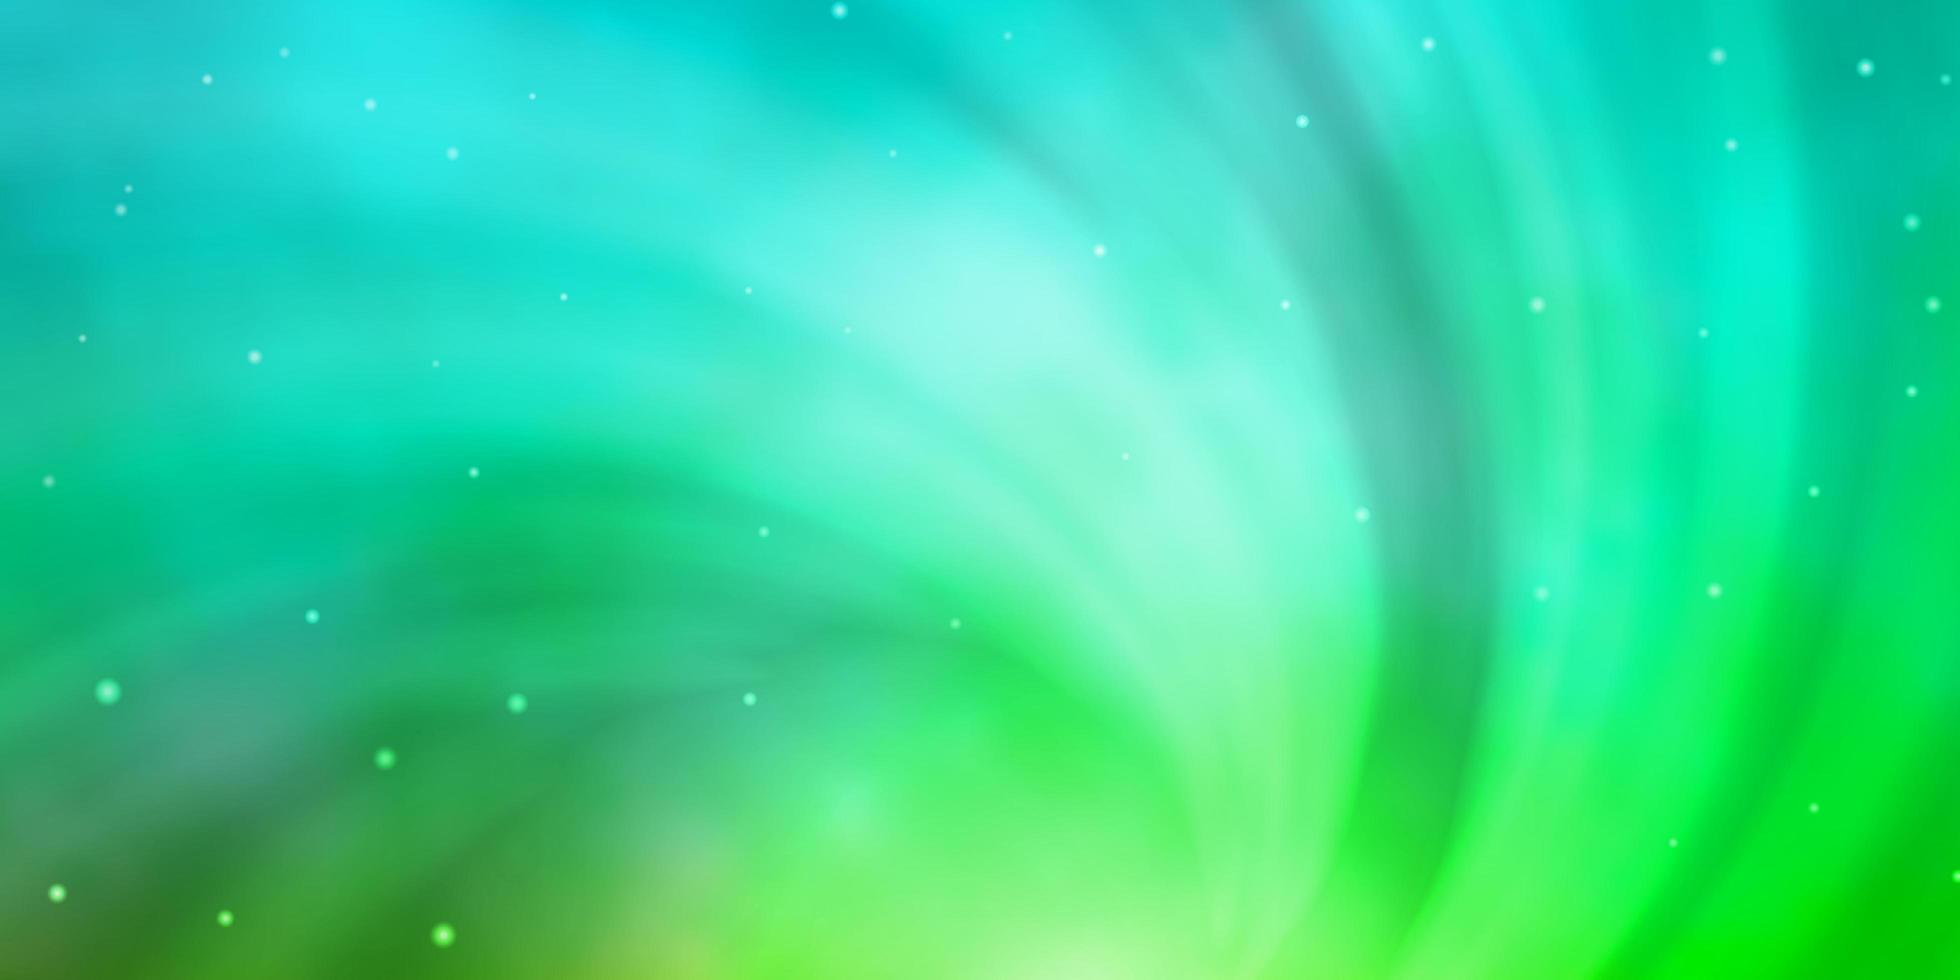 Light Green template with neon stars. vector